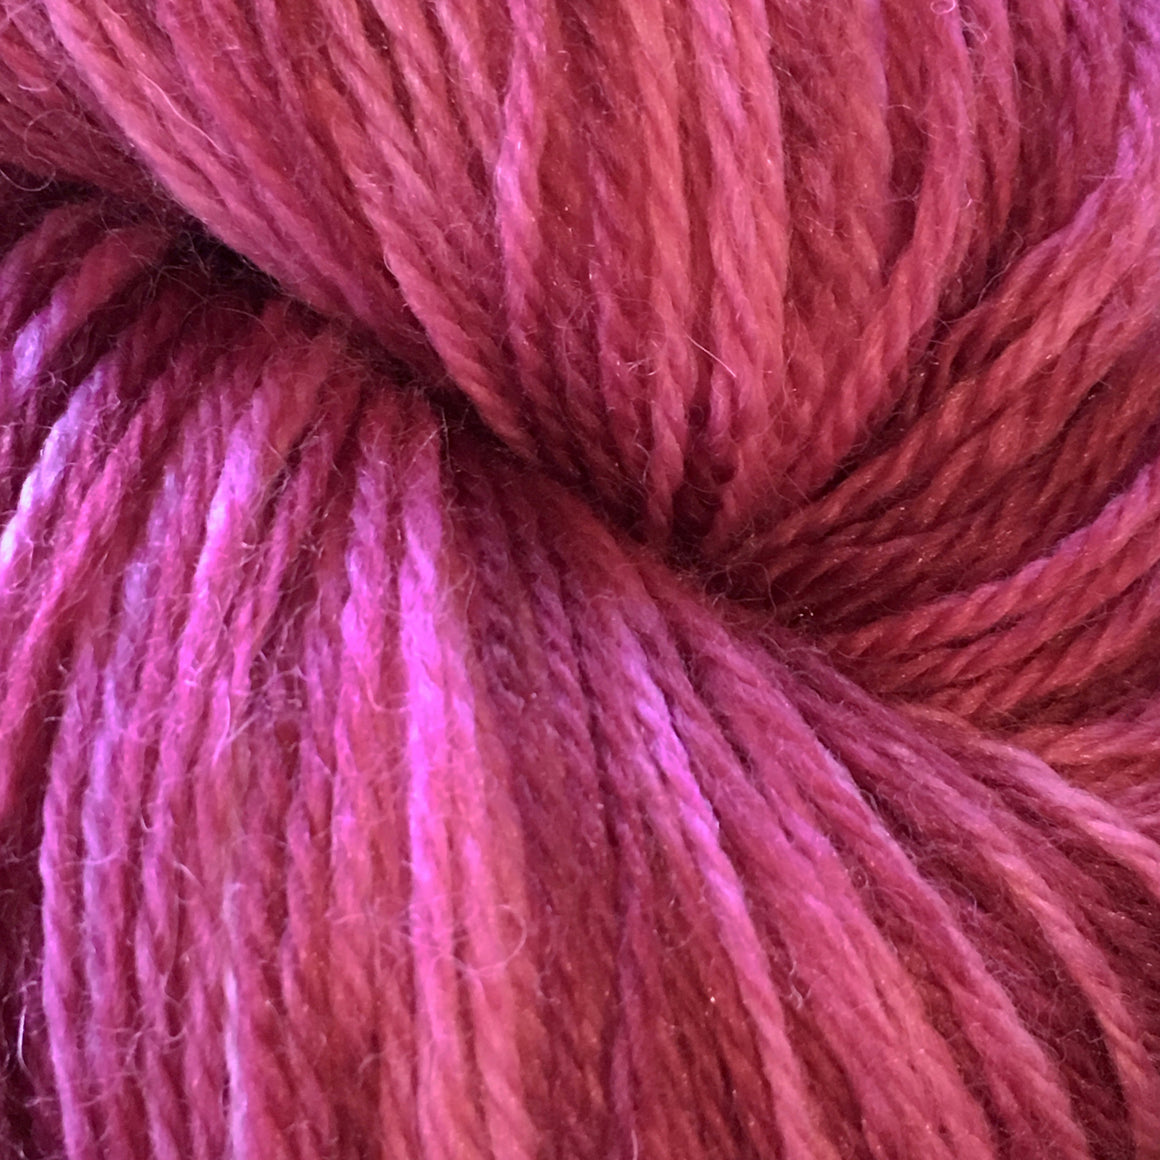 """Tiny Dancer"" has deep purple and magenta tones on a bright pink background in this fingering weight super wash merino/nylon blend yarn"